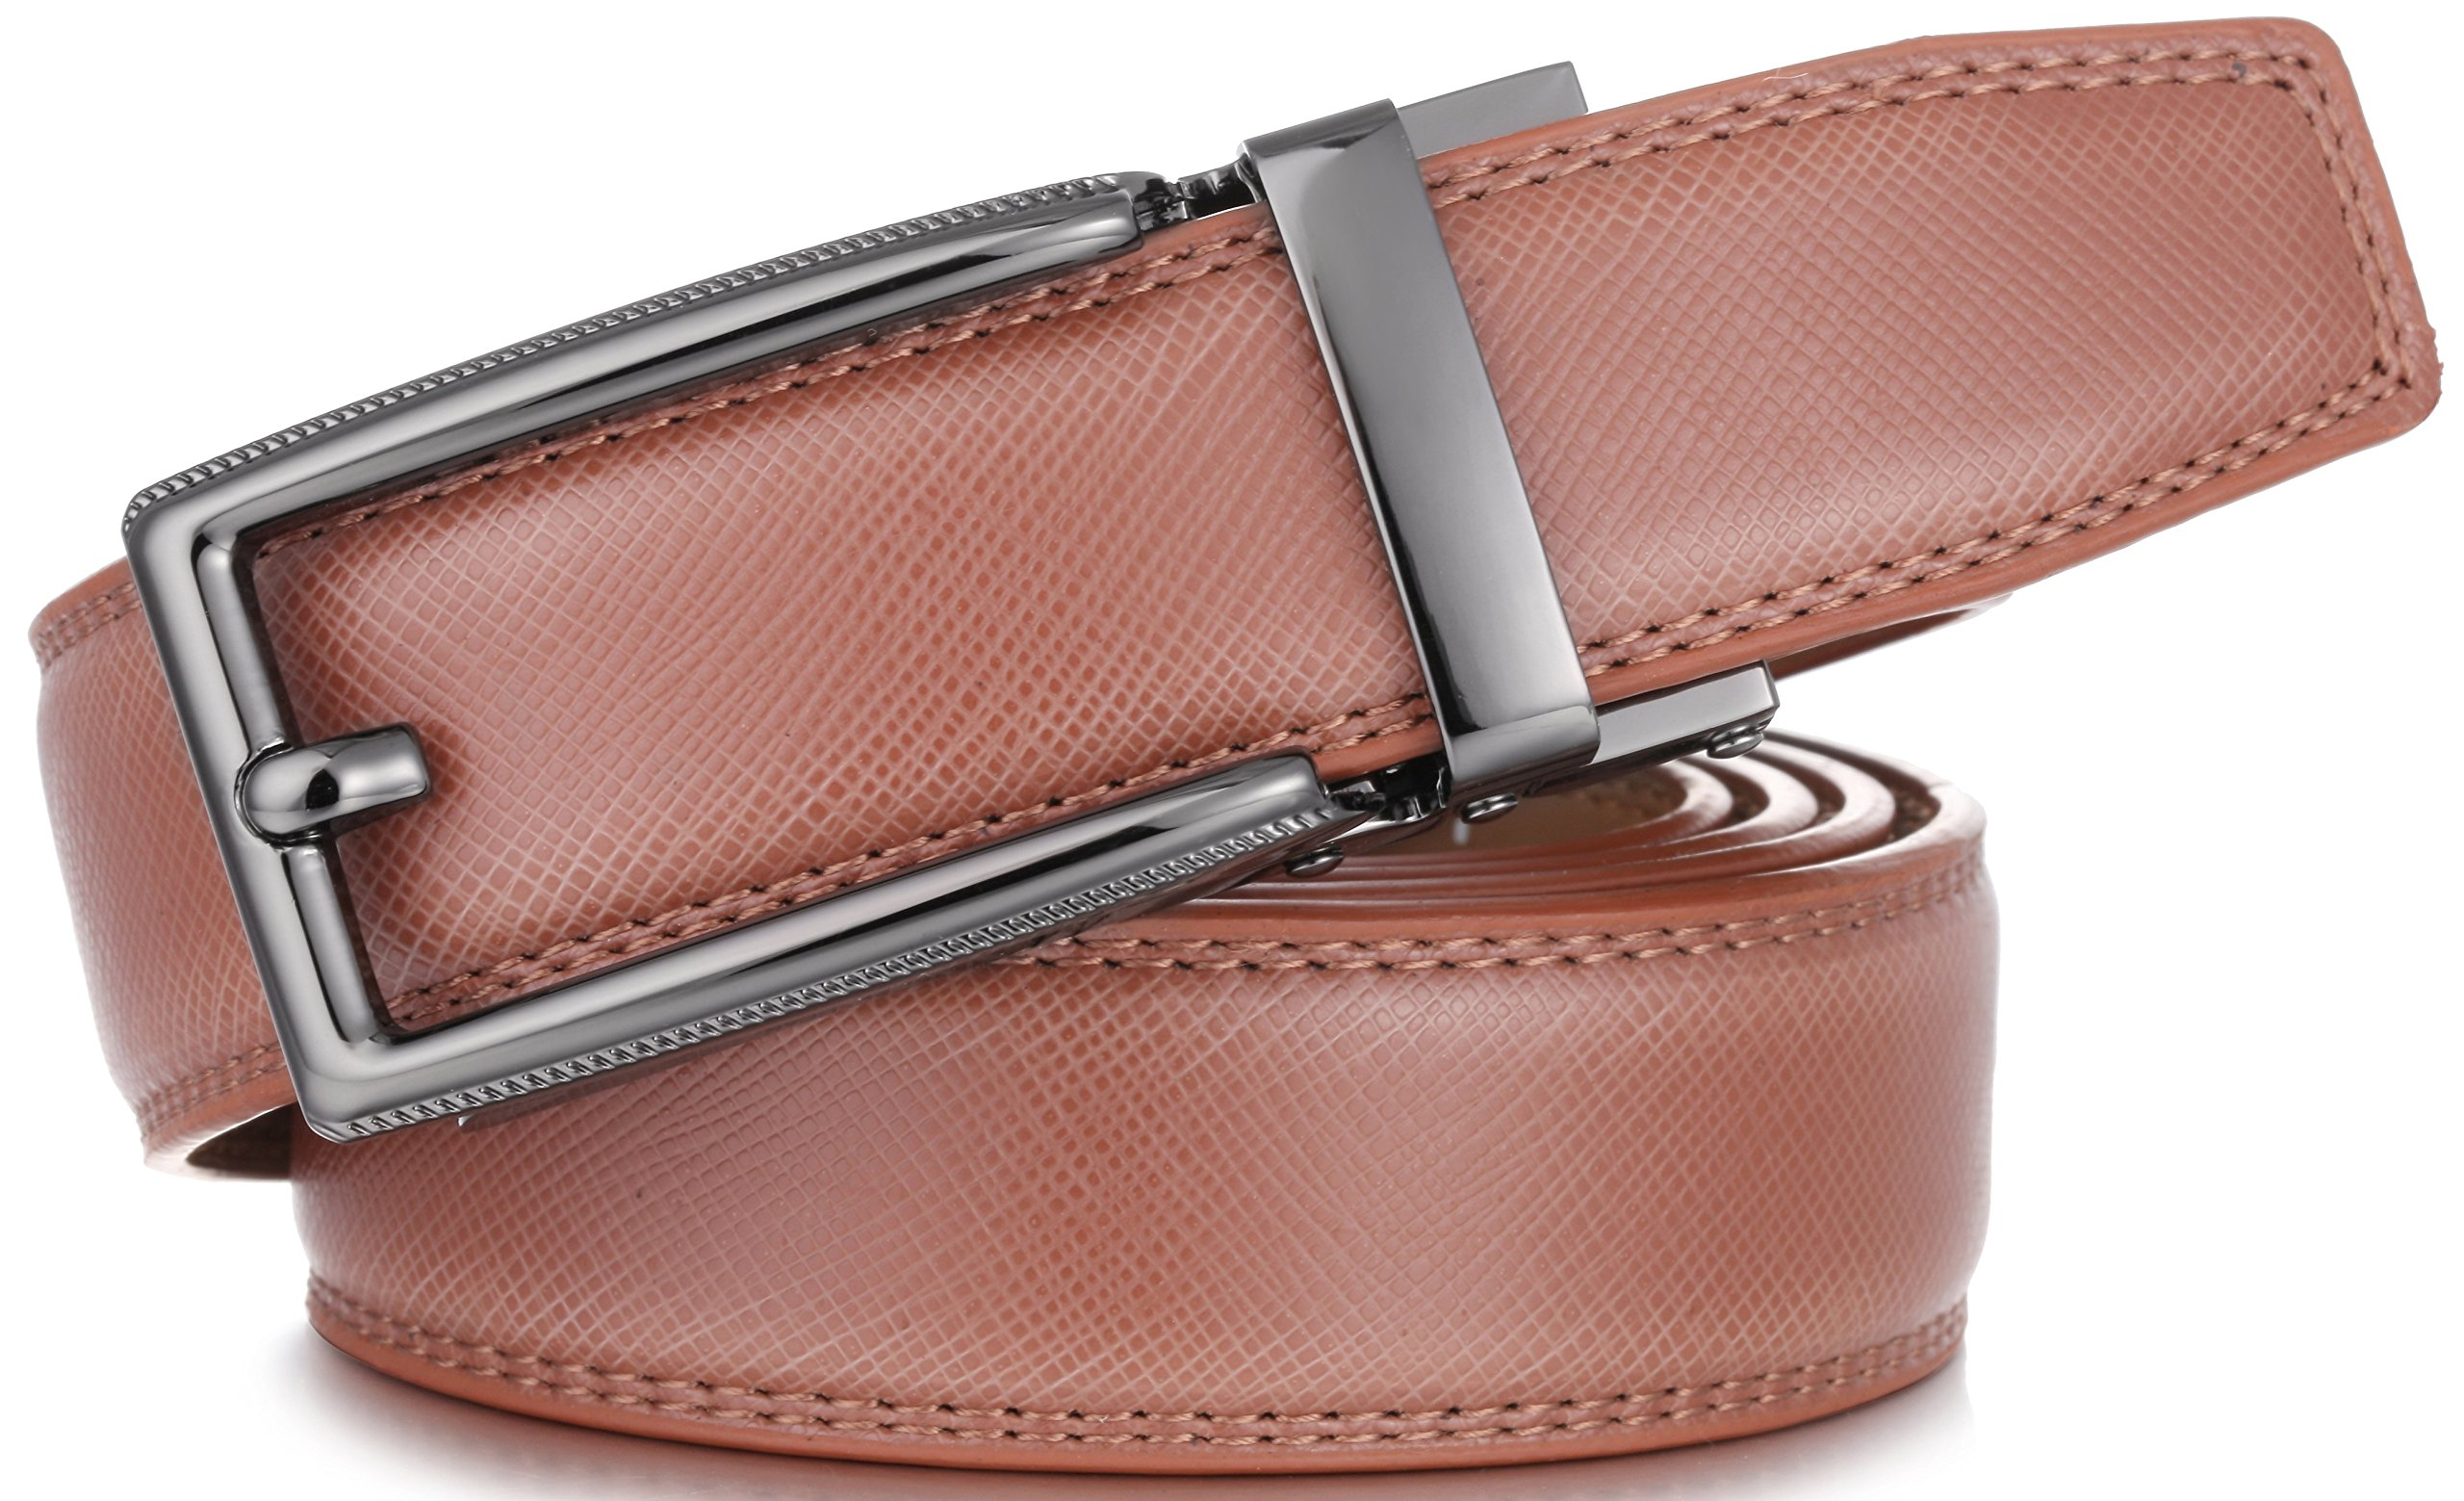 Marino Men's Genuine Leather Ratchet Dress Belt with Open Linxx Buckle, Enclosed in an Elegant Gift Box - Light Tan - Style 70 - Custom: Up to 44'' Waist by Marino Avenue (Image #4)